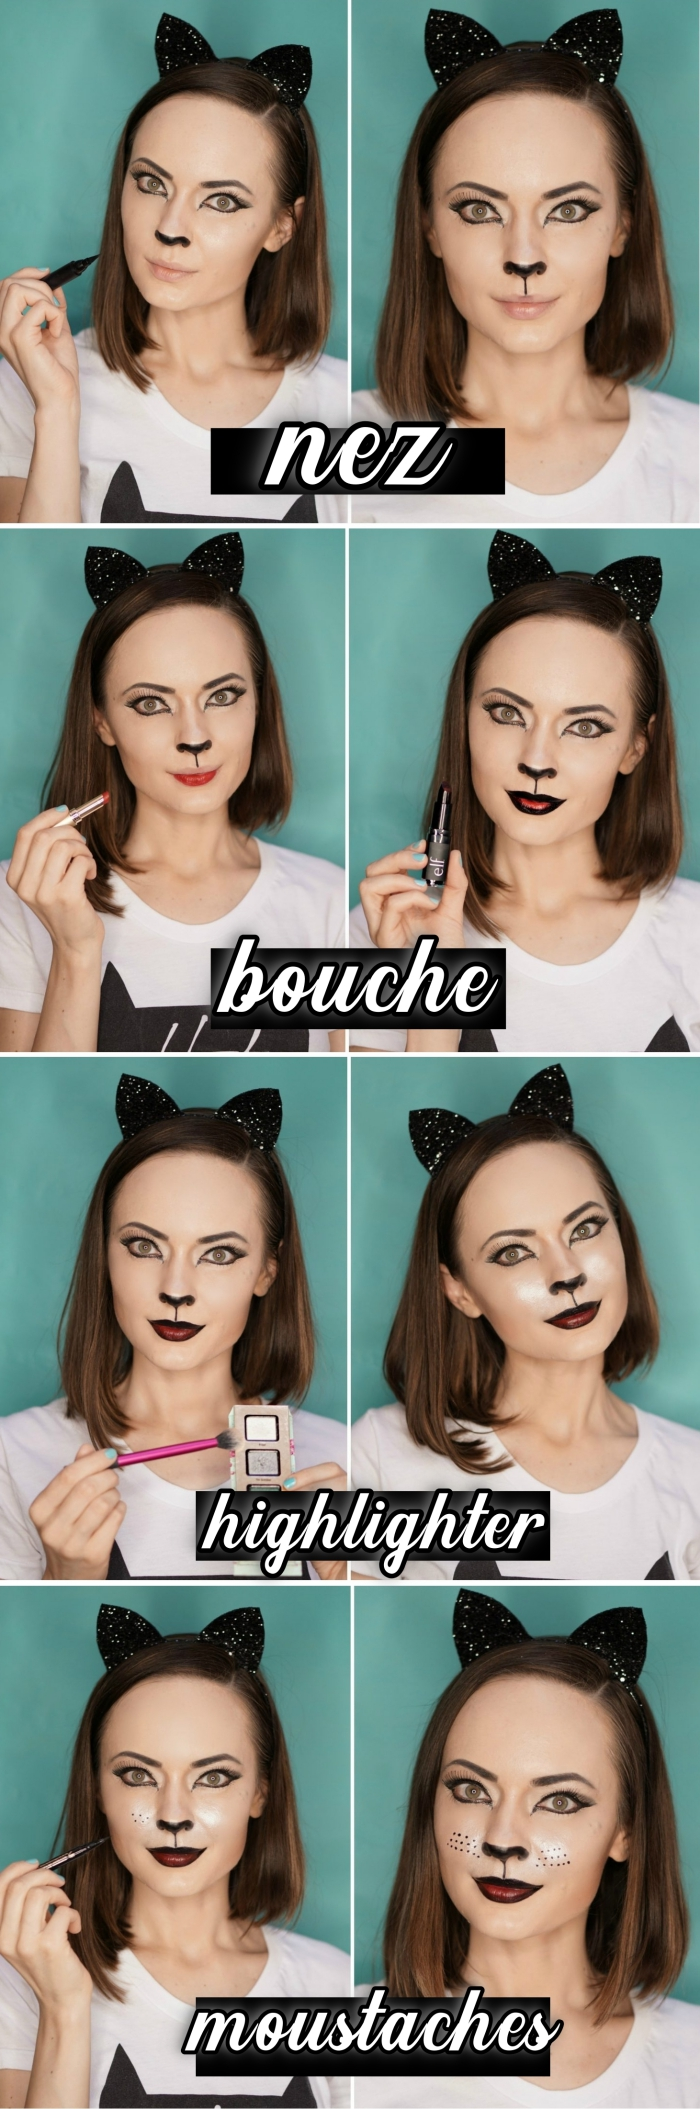 exemple comment se maquiller comme chat pour Halloween, tuto maquillage facile, idée maquillage chat halloween